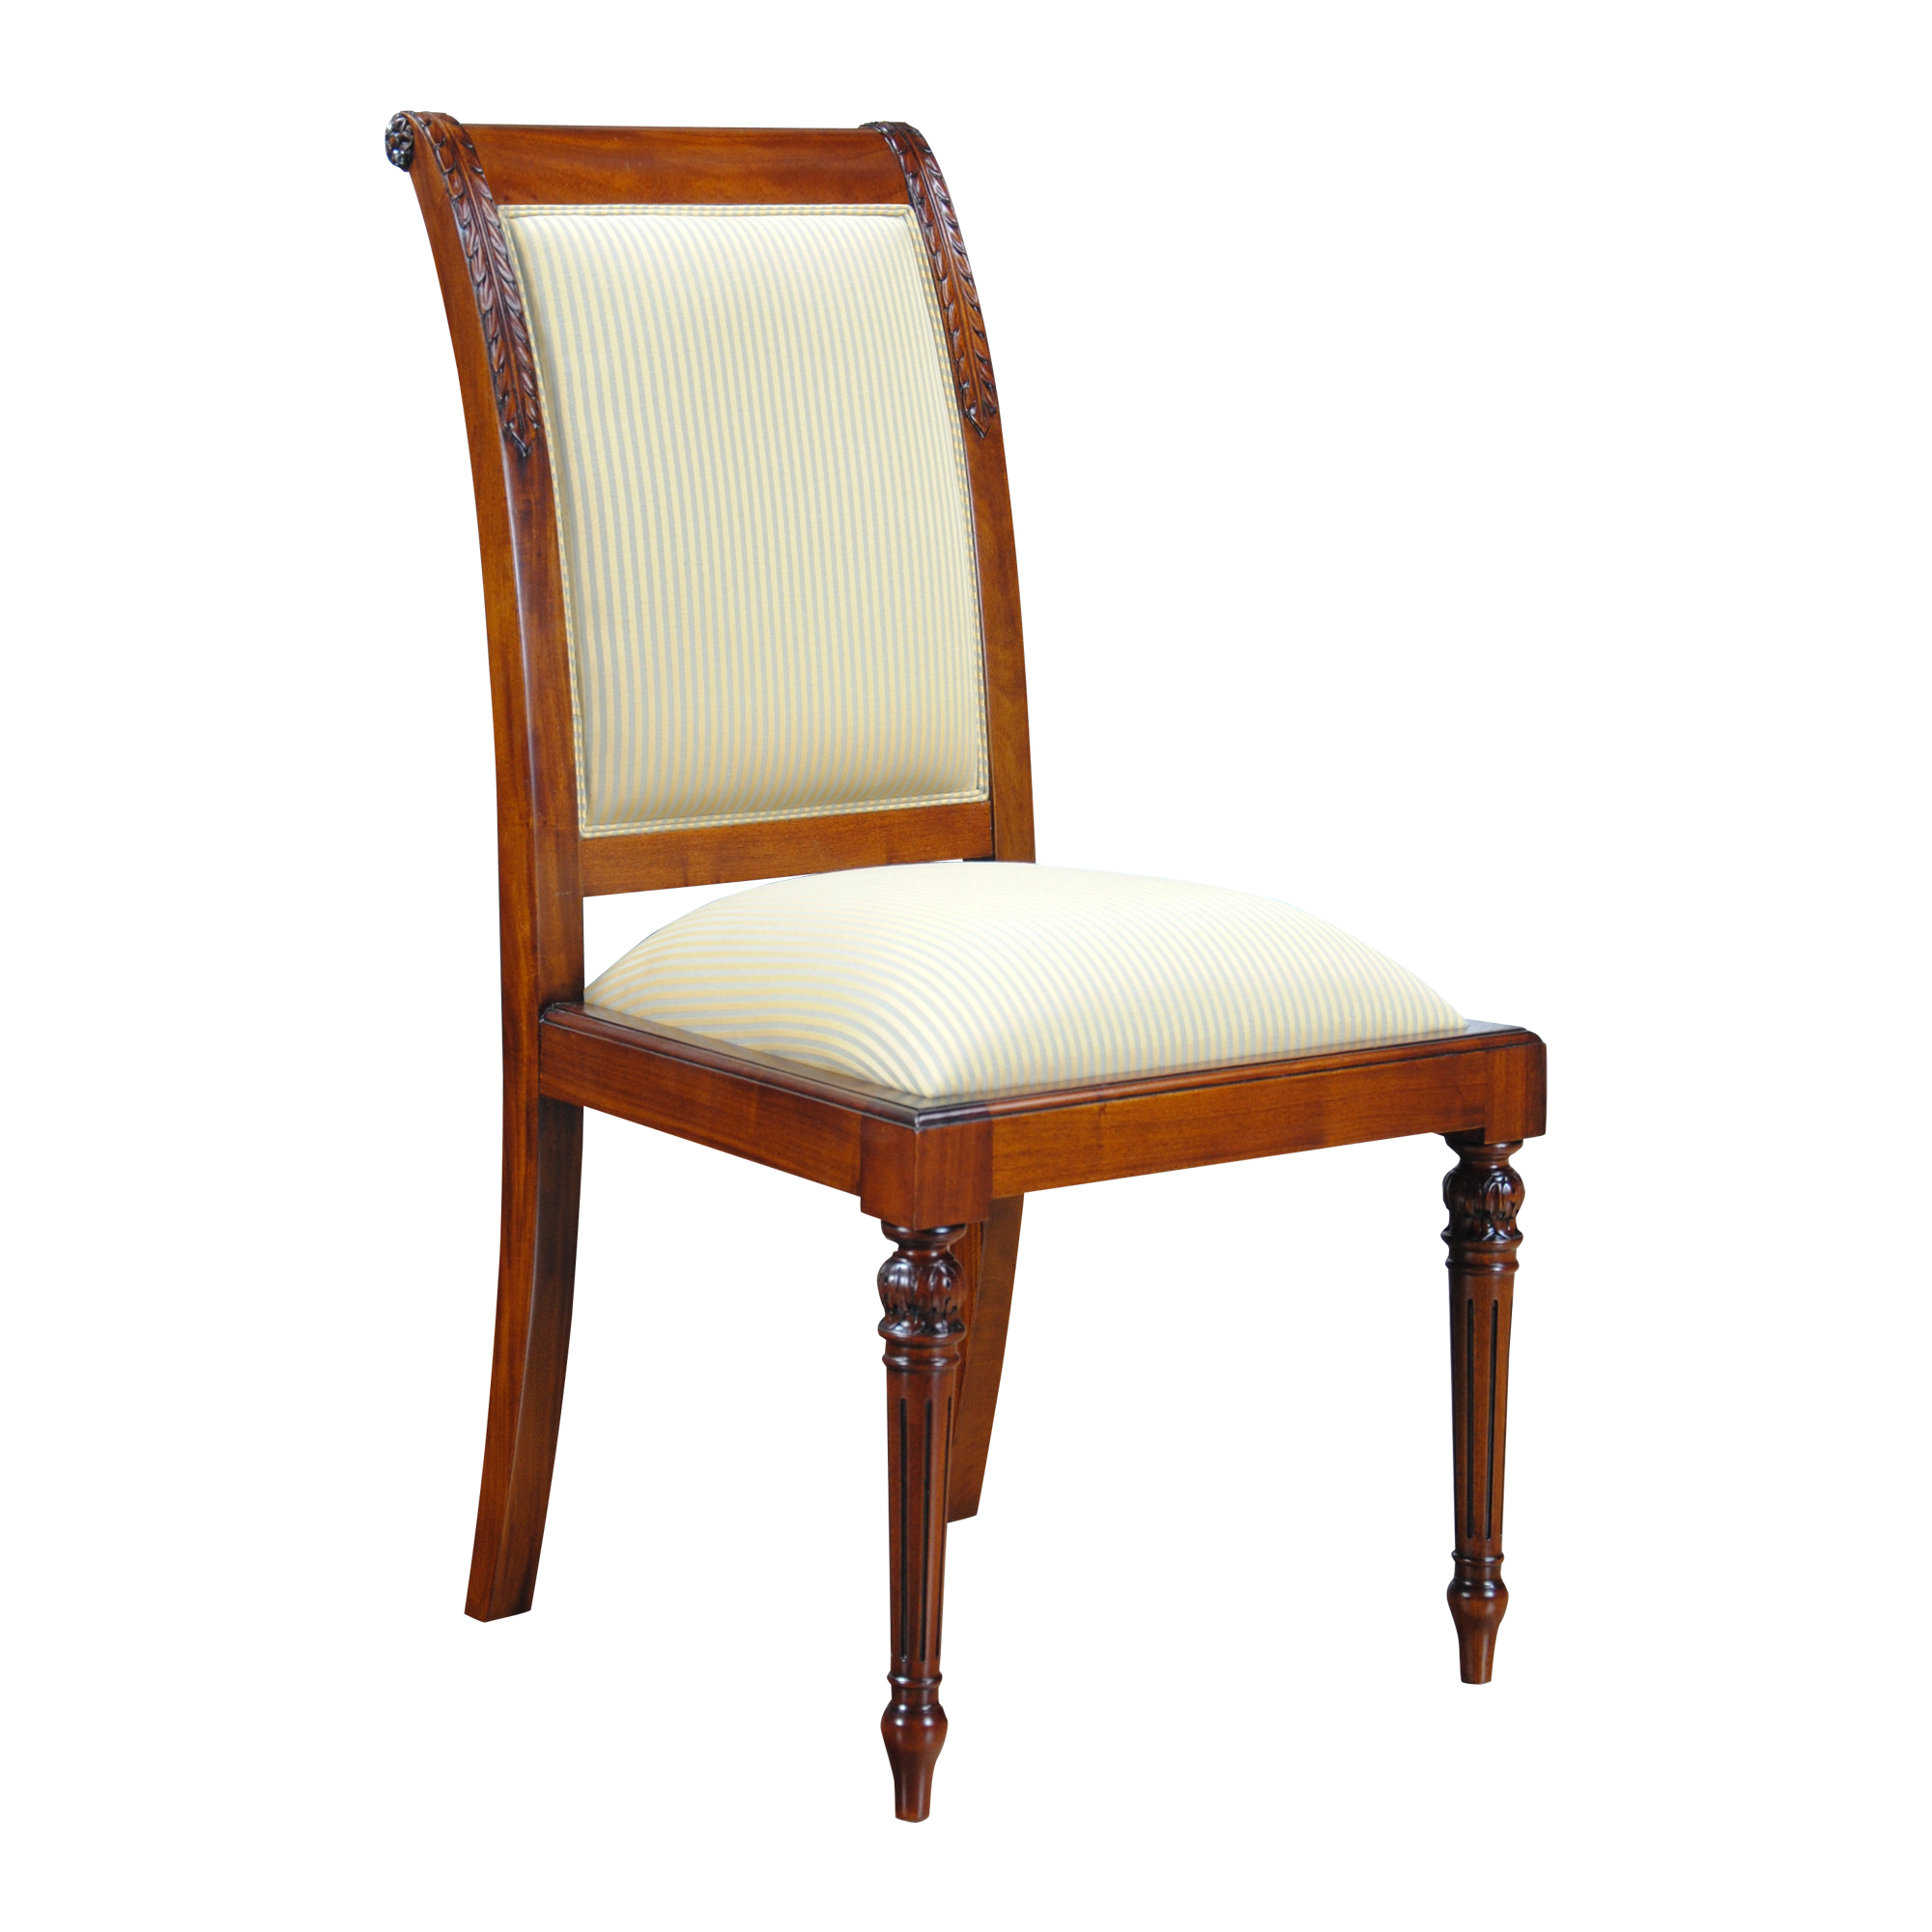 Upholstered Side Chairs Empire Upholstered Side Chair Niagara Furniture Solid